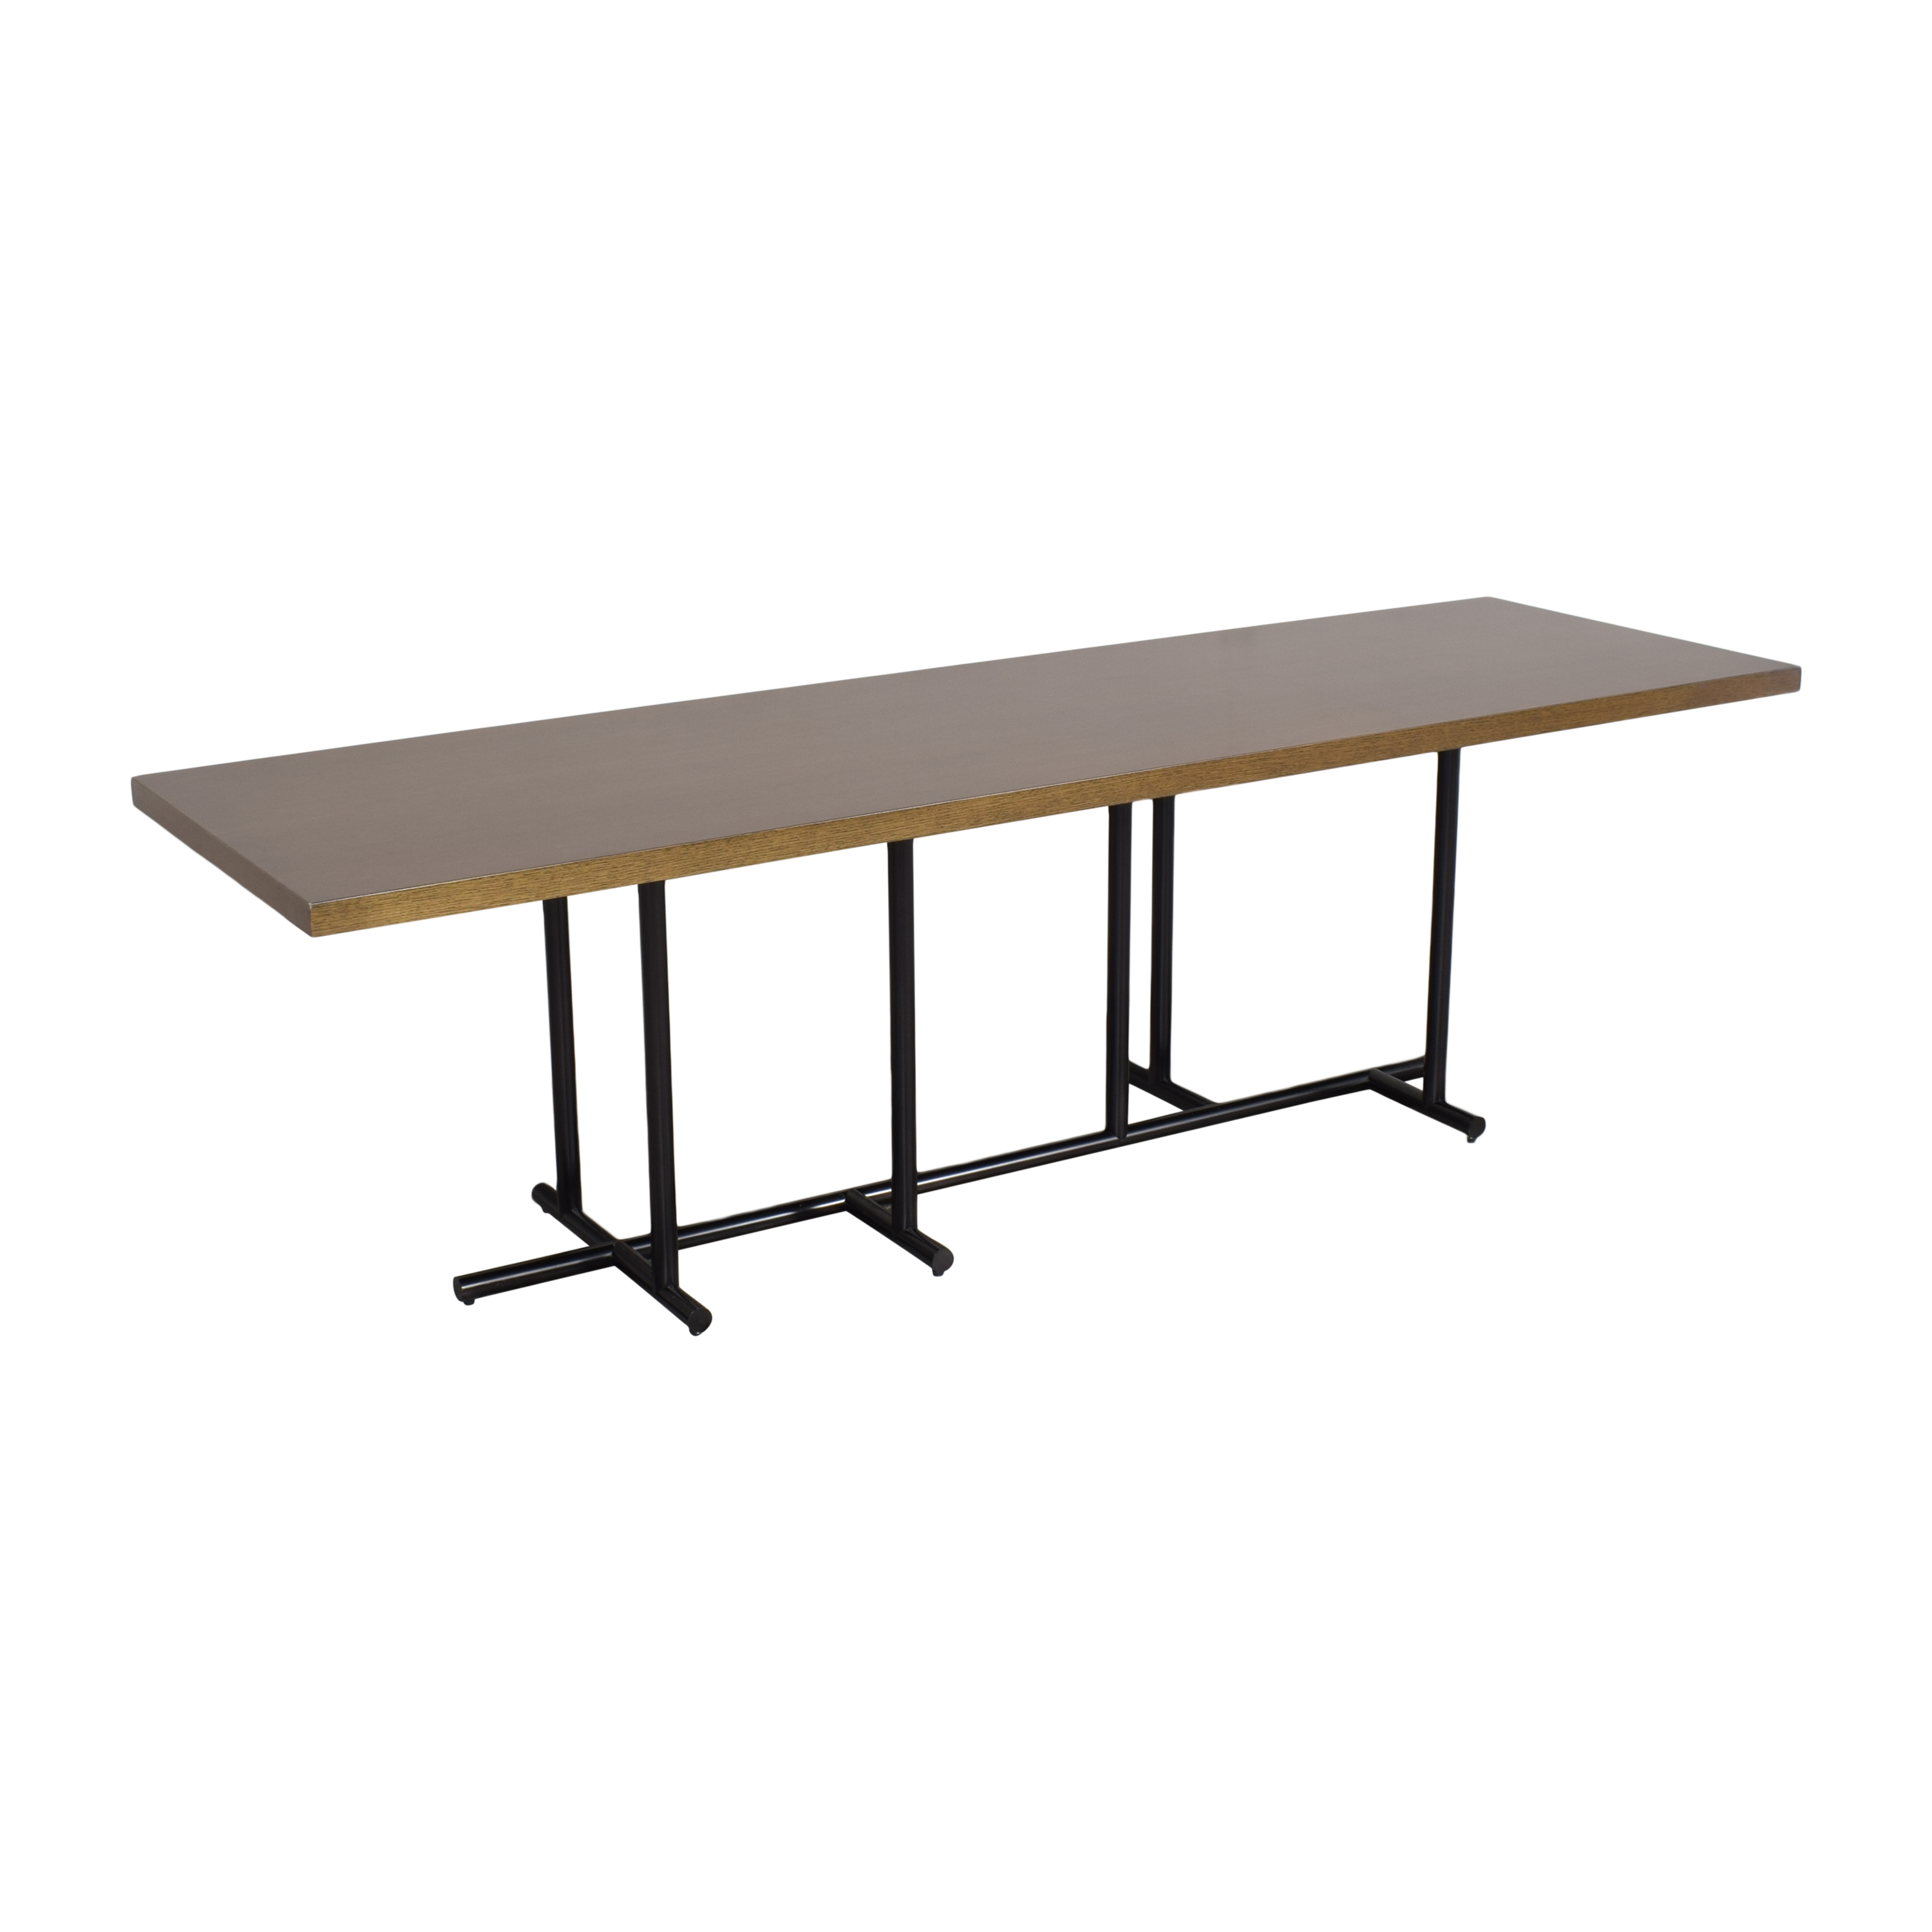 buy Eric Brand Eric Brand Industrial Style Utility Table online